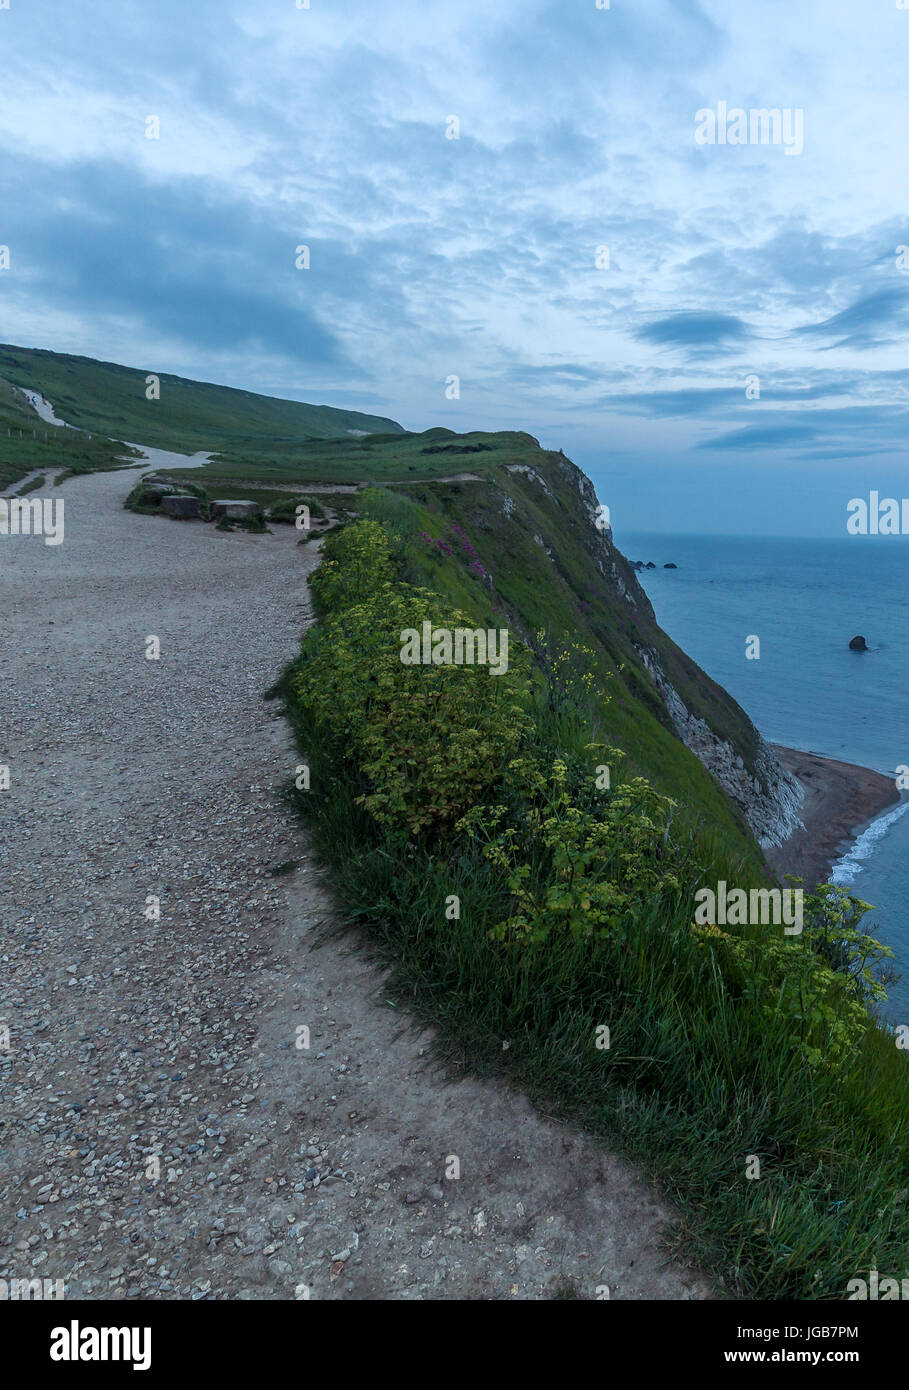 Pathway on top of jurassic coast in dorset England - Stock Image